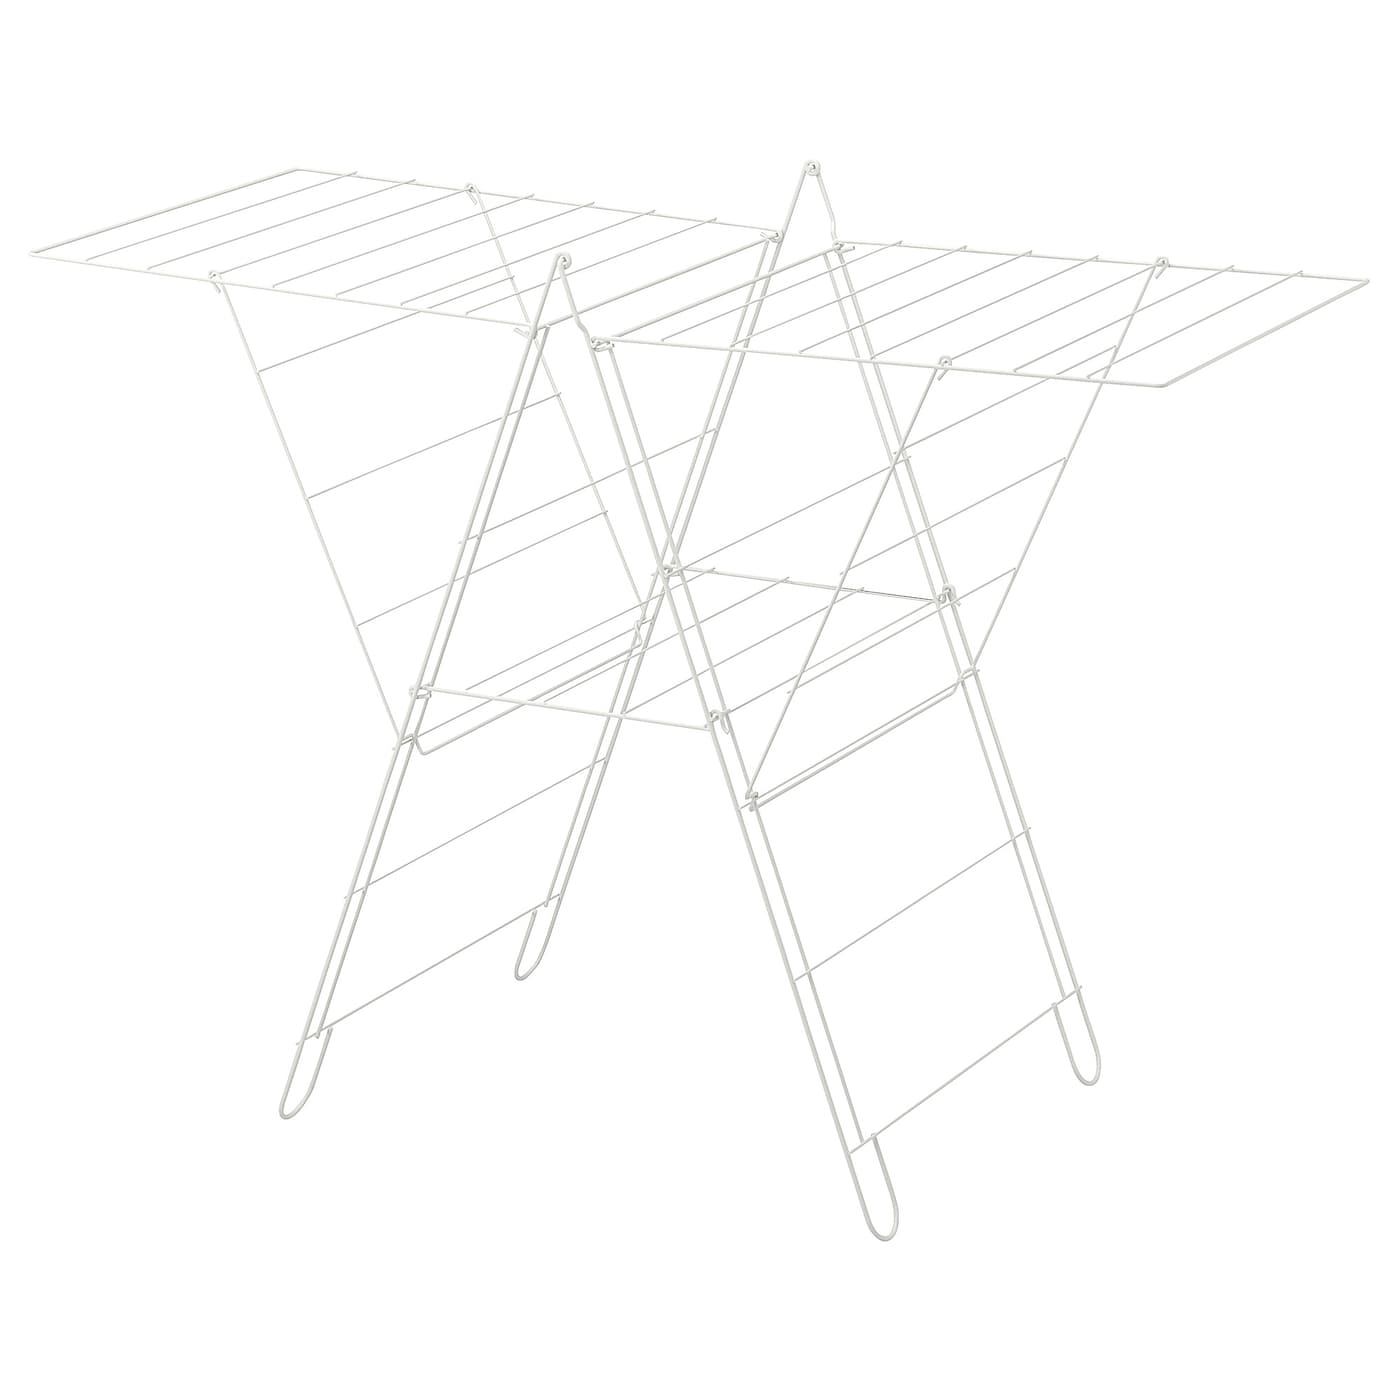 IKEA FROST drying rack, in/outdoor Simple to fold up and put away.